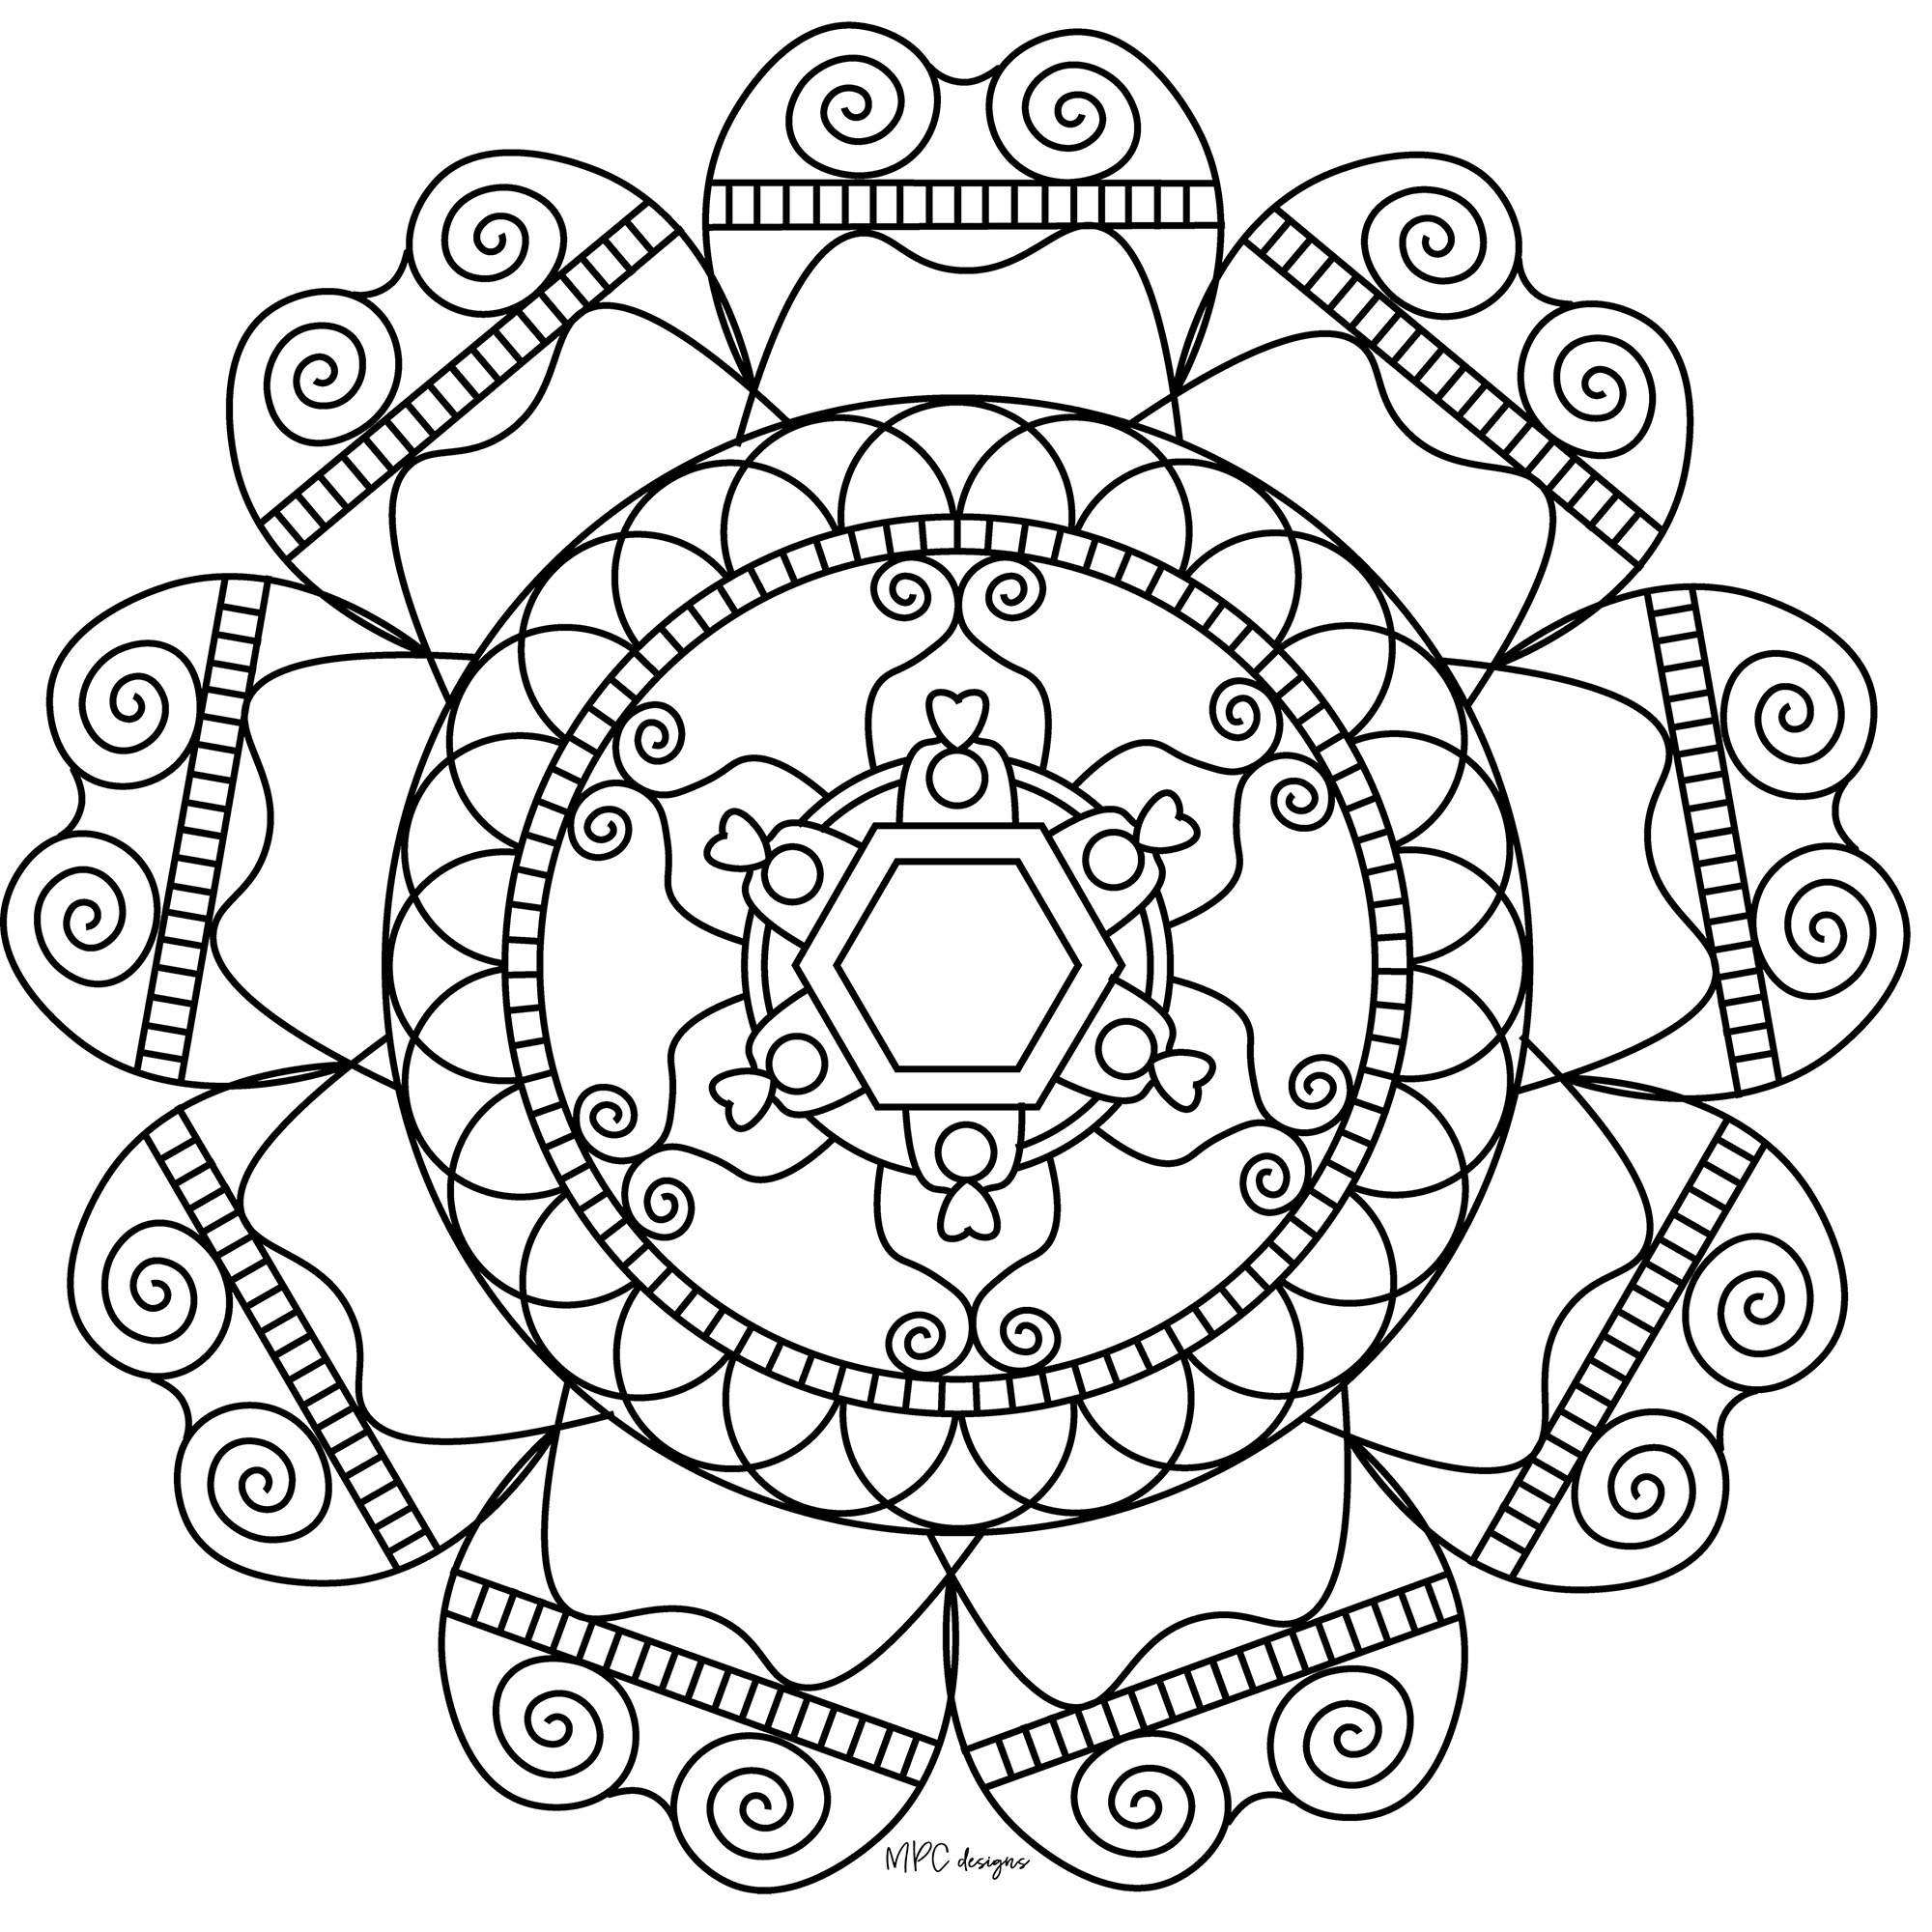 zen mandala coloring pages quotfiestaquot mandala coloring pages adult doodle art zen zen mandala coloring pages